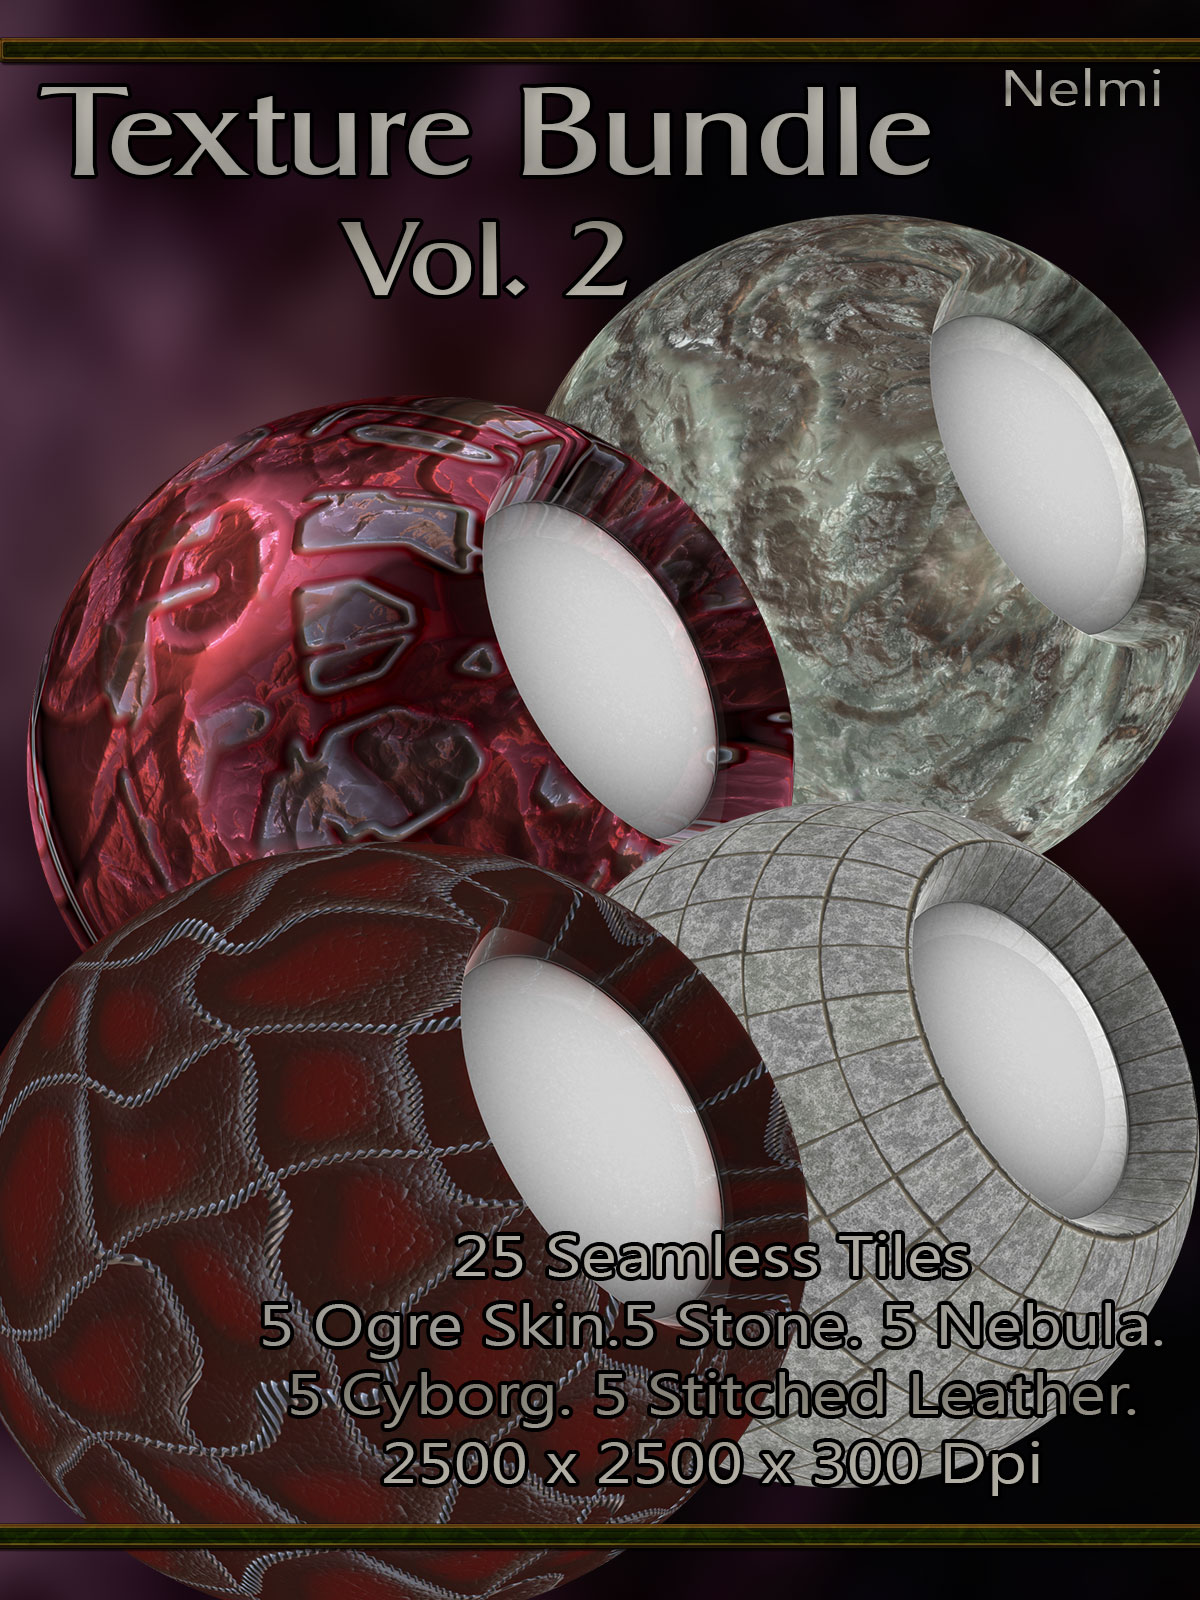 Texture Bundle Vol 2: Cyborg, Stone, Ogre Skin, Nebula, Stitched Leather